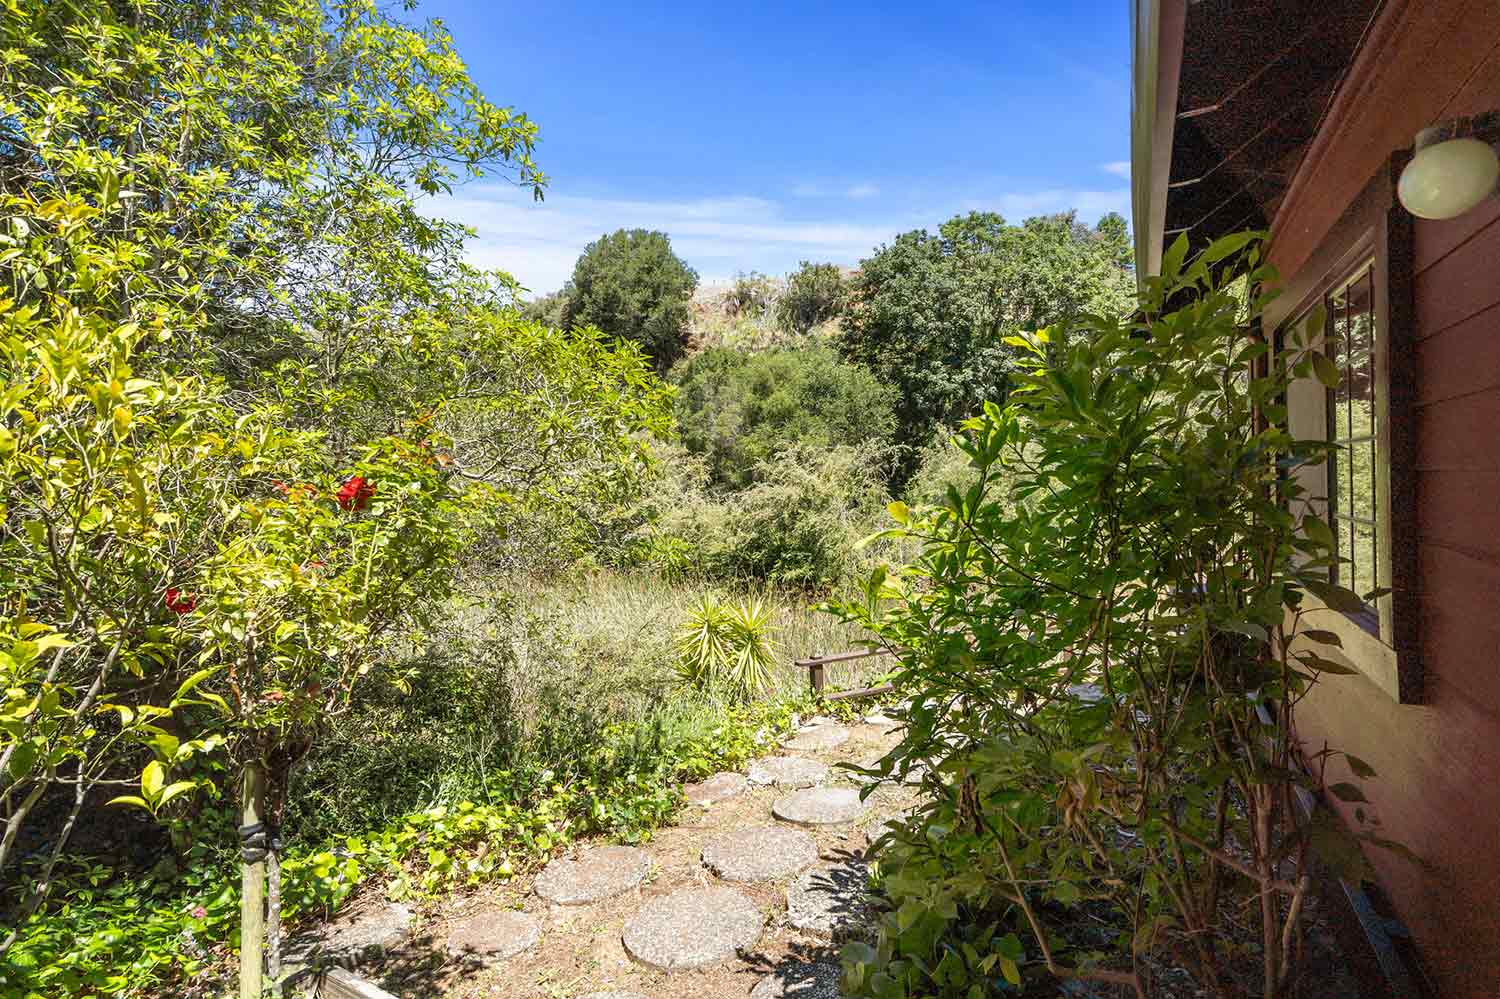 222 quarry lane santa cruz - view from yard